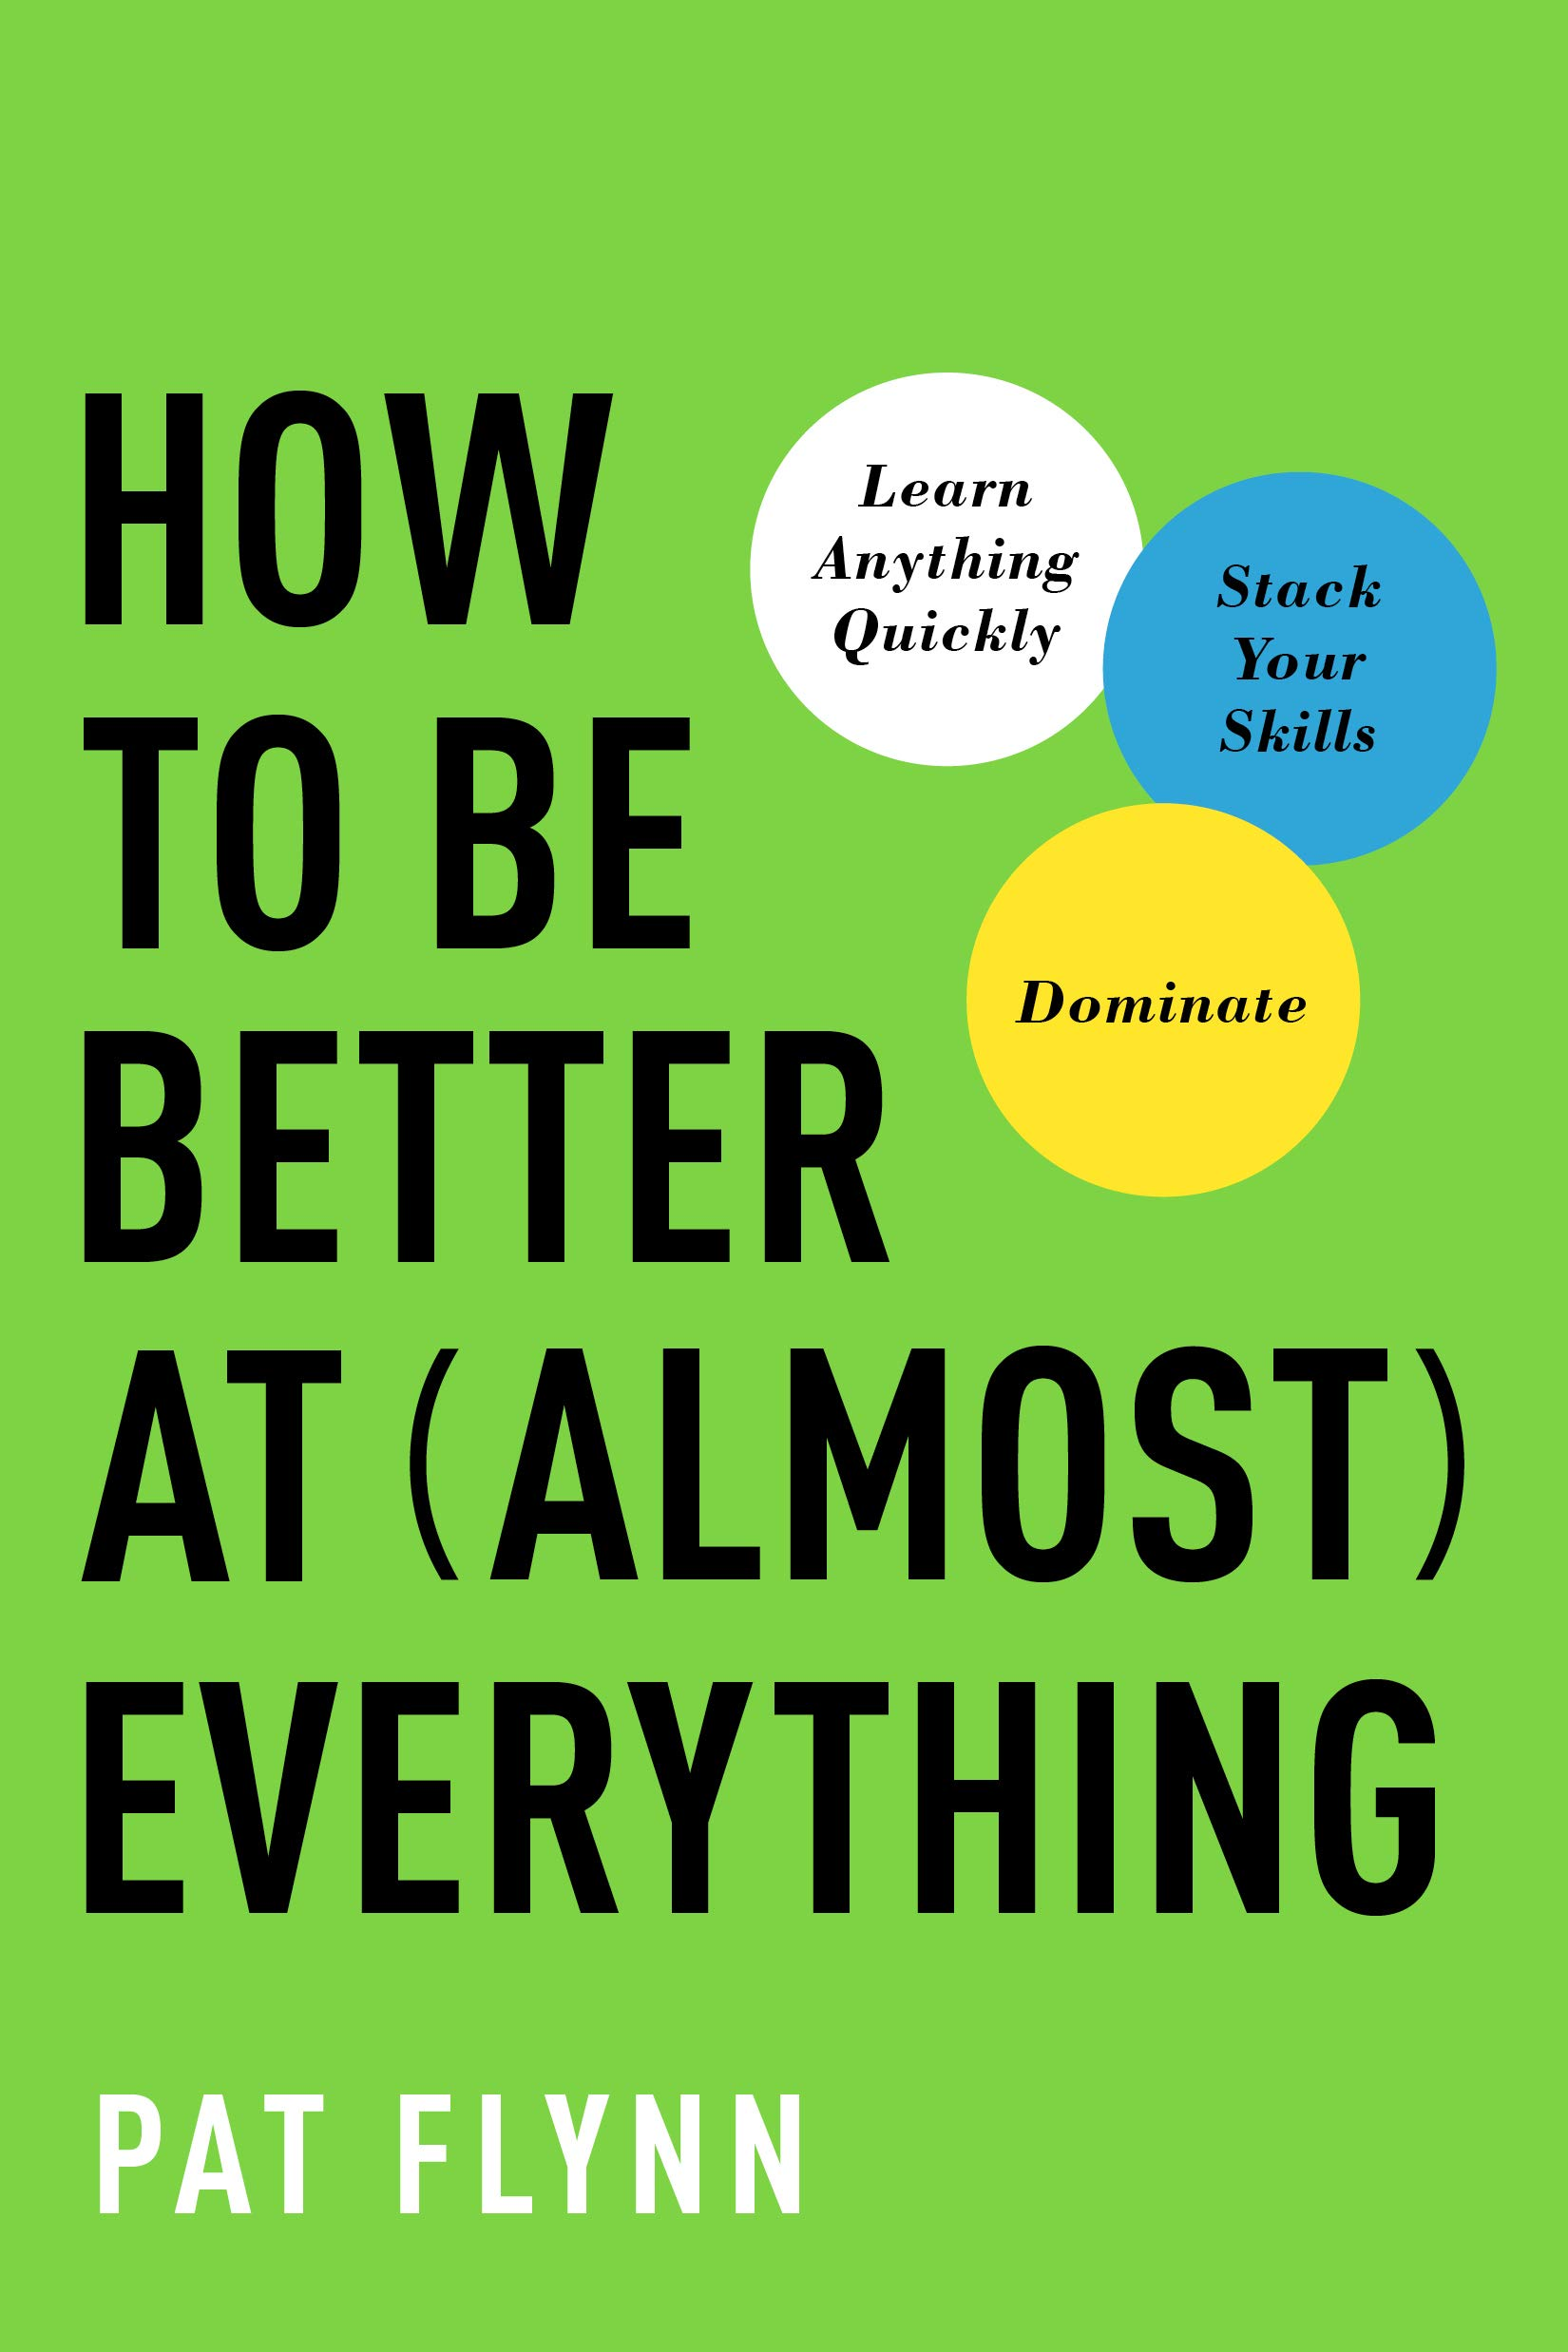 How to Be Better at Almost Everything (by Pat Flynn)